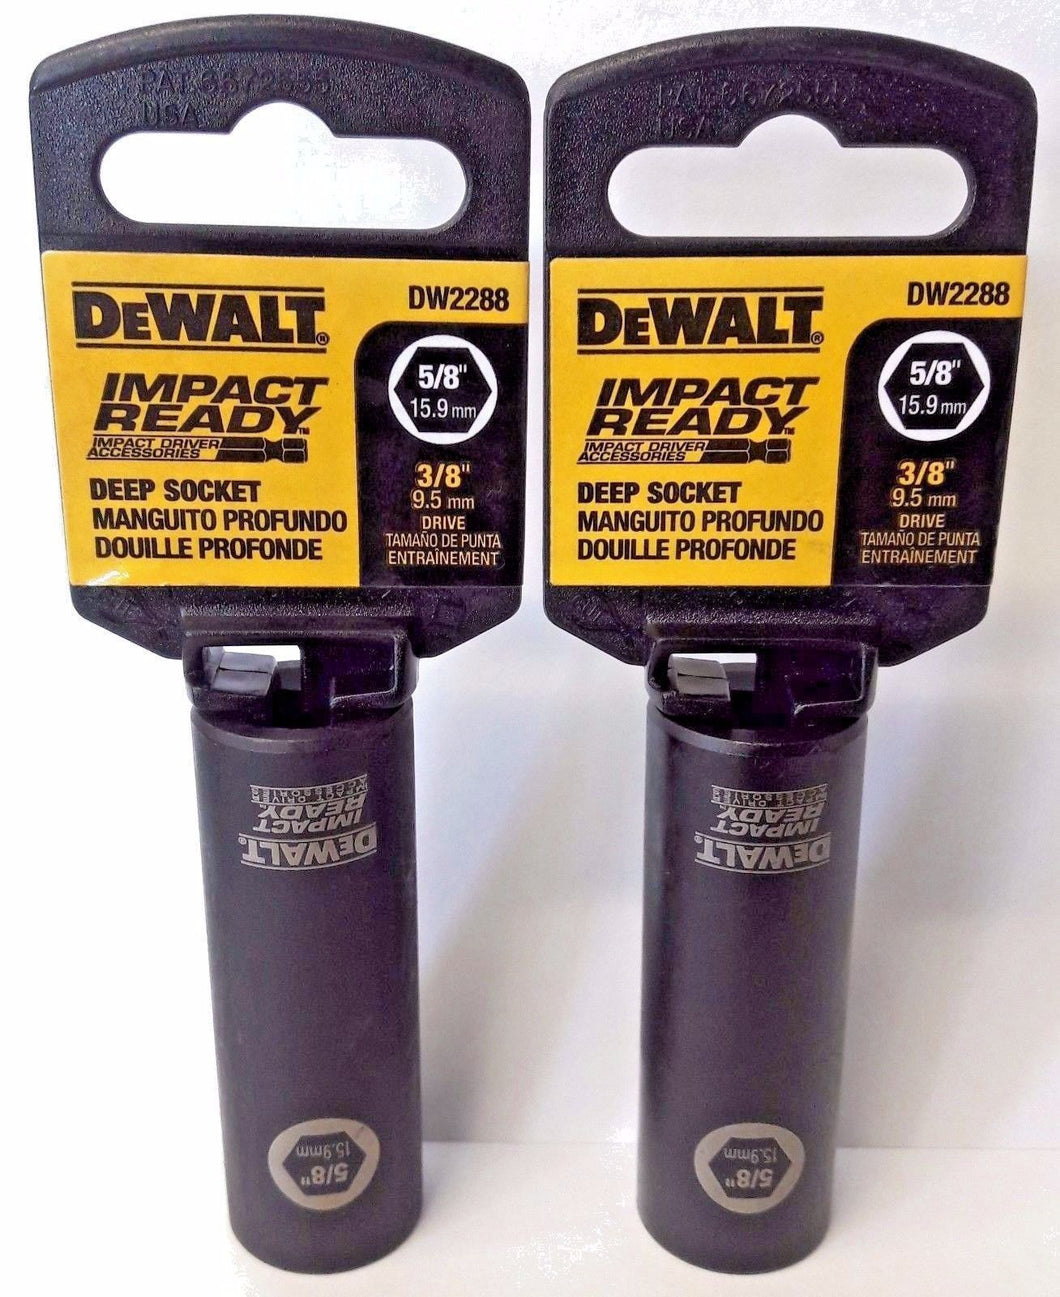 Dewalt DW2288 Impact Ready Deep Socket 5/8